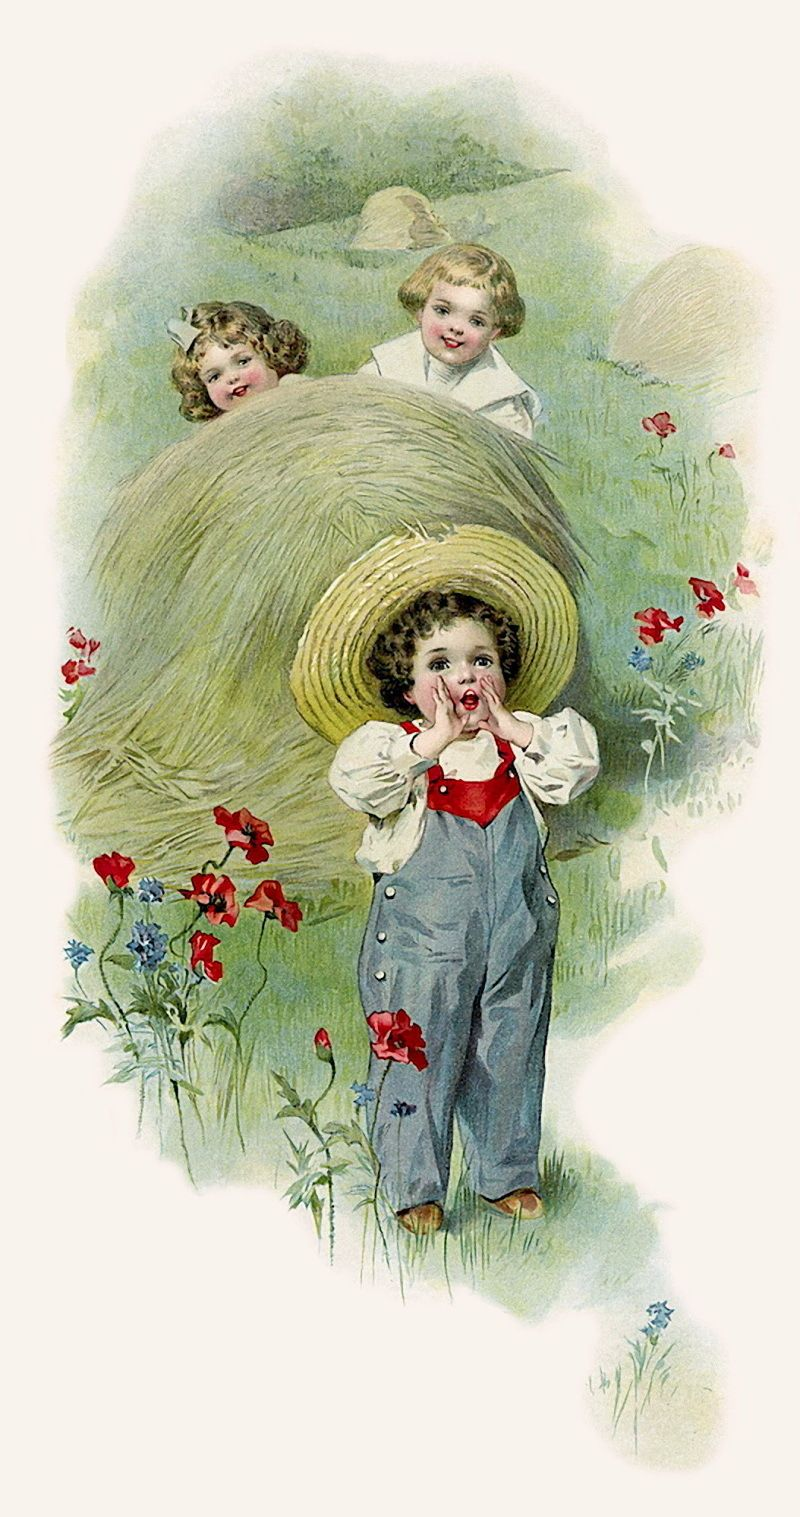 Victorian little boy playing with toys clipart freeuse LITTLE FARM BOY: Playing Hide and Seek -- illustration by ... freeuse